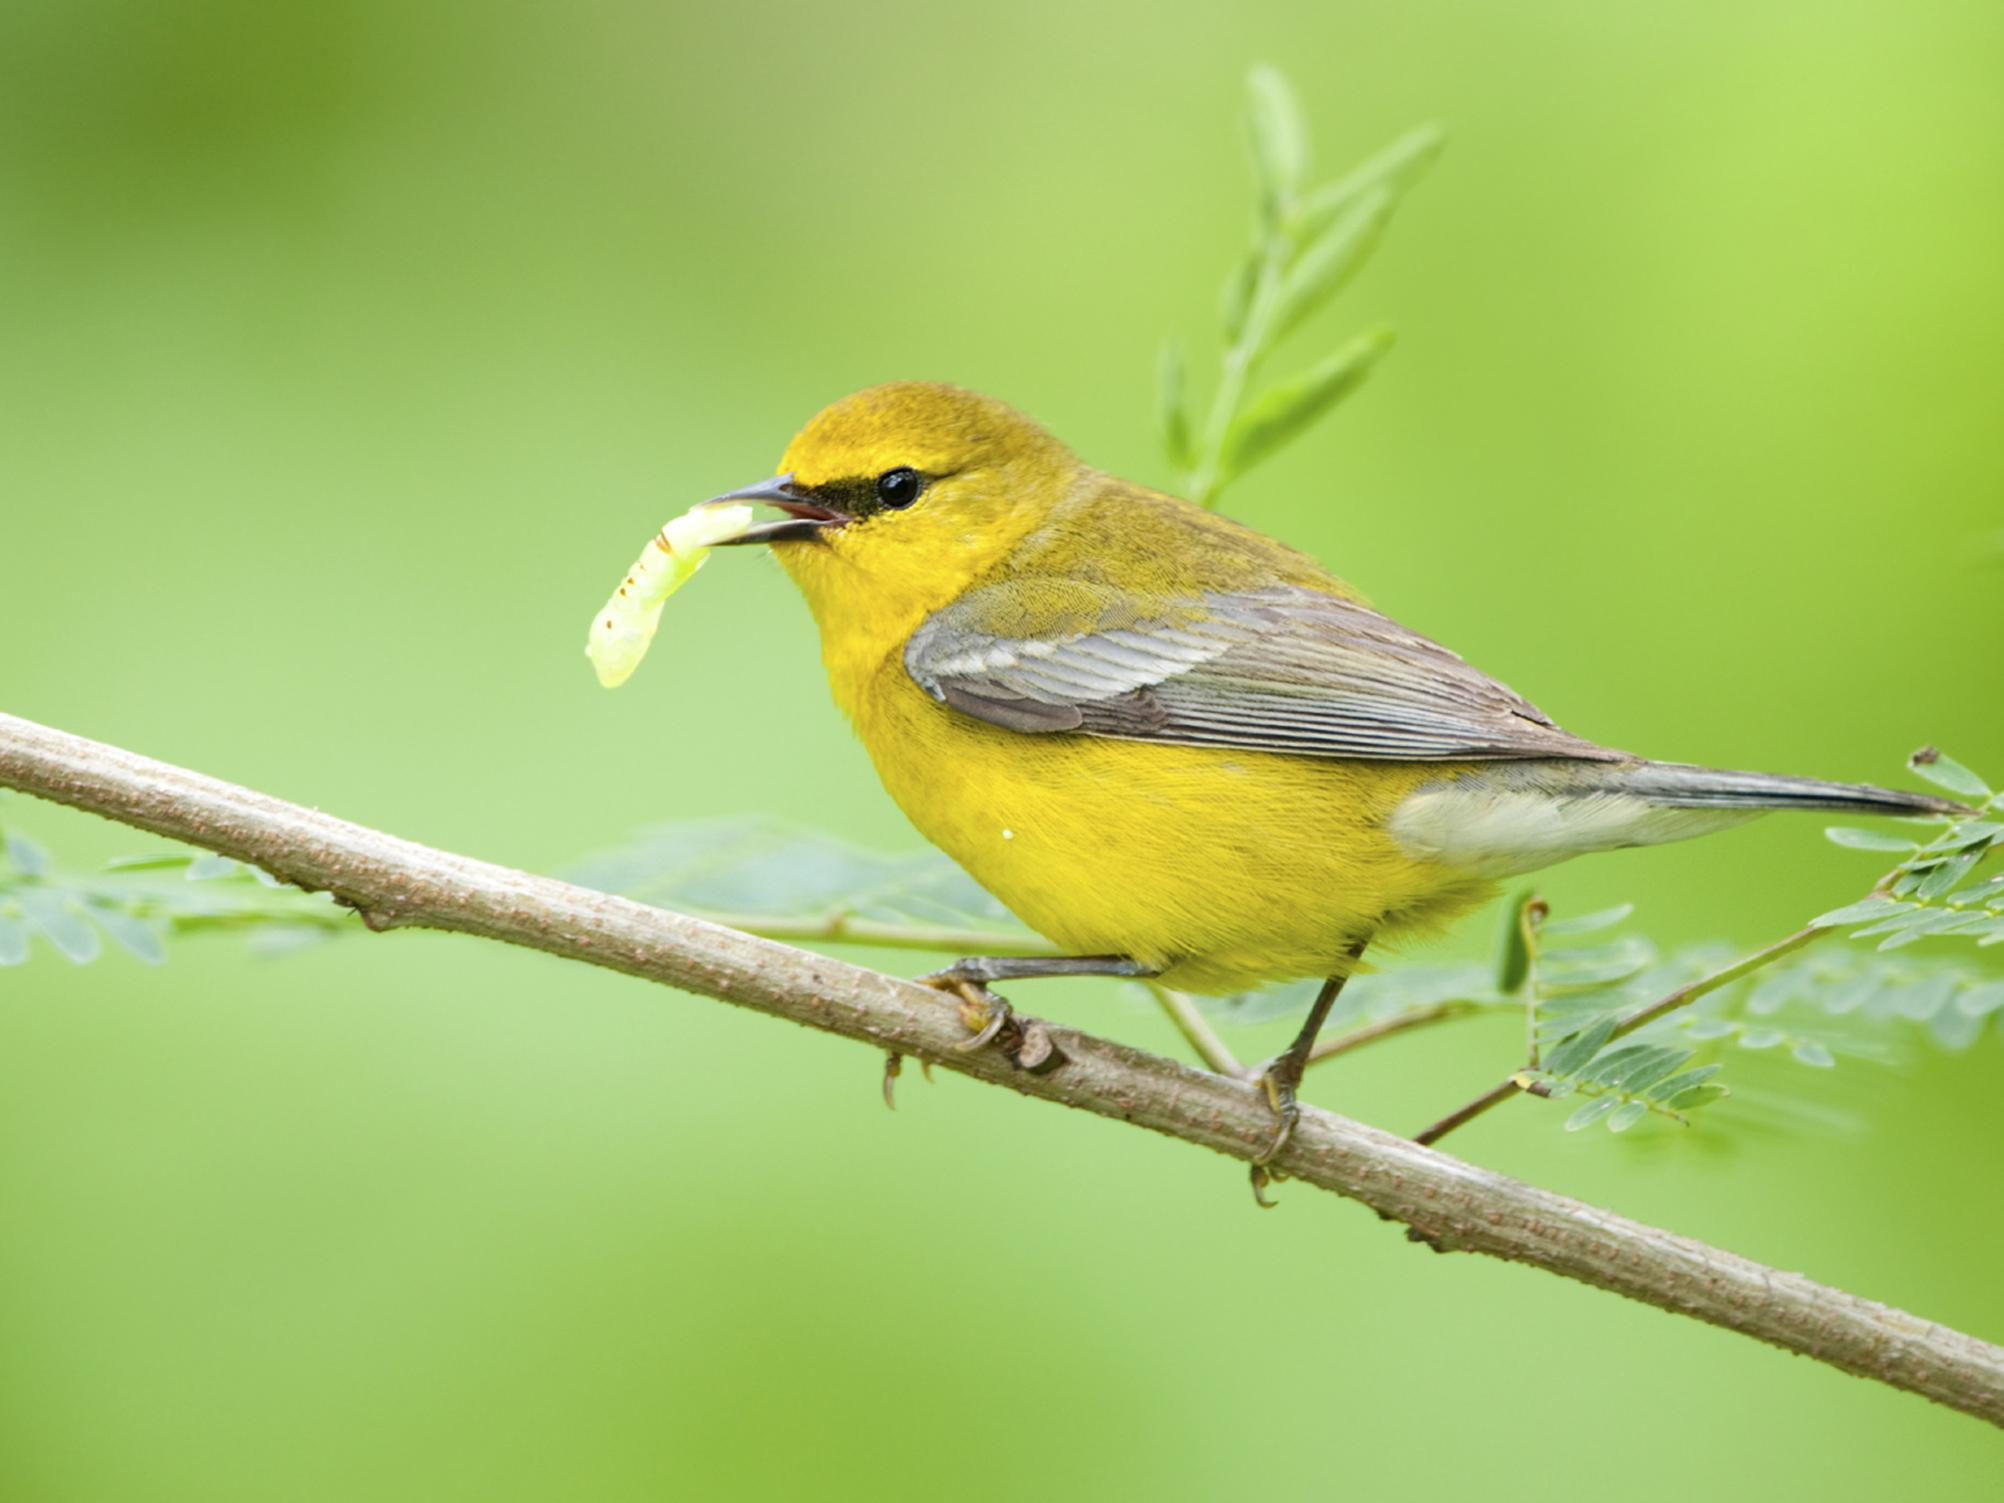 A small yellow bird holding a worm in its beak while perched on a small tree branch.